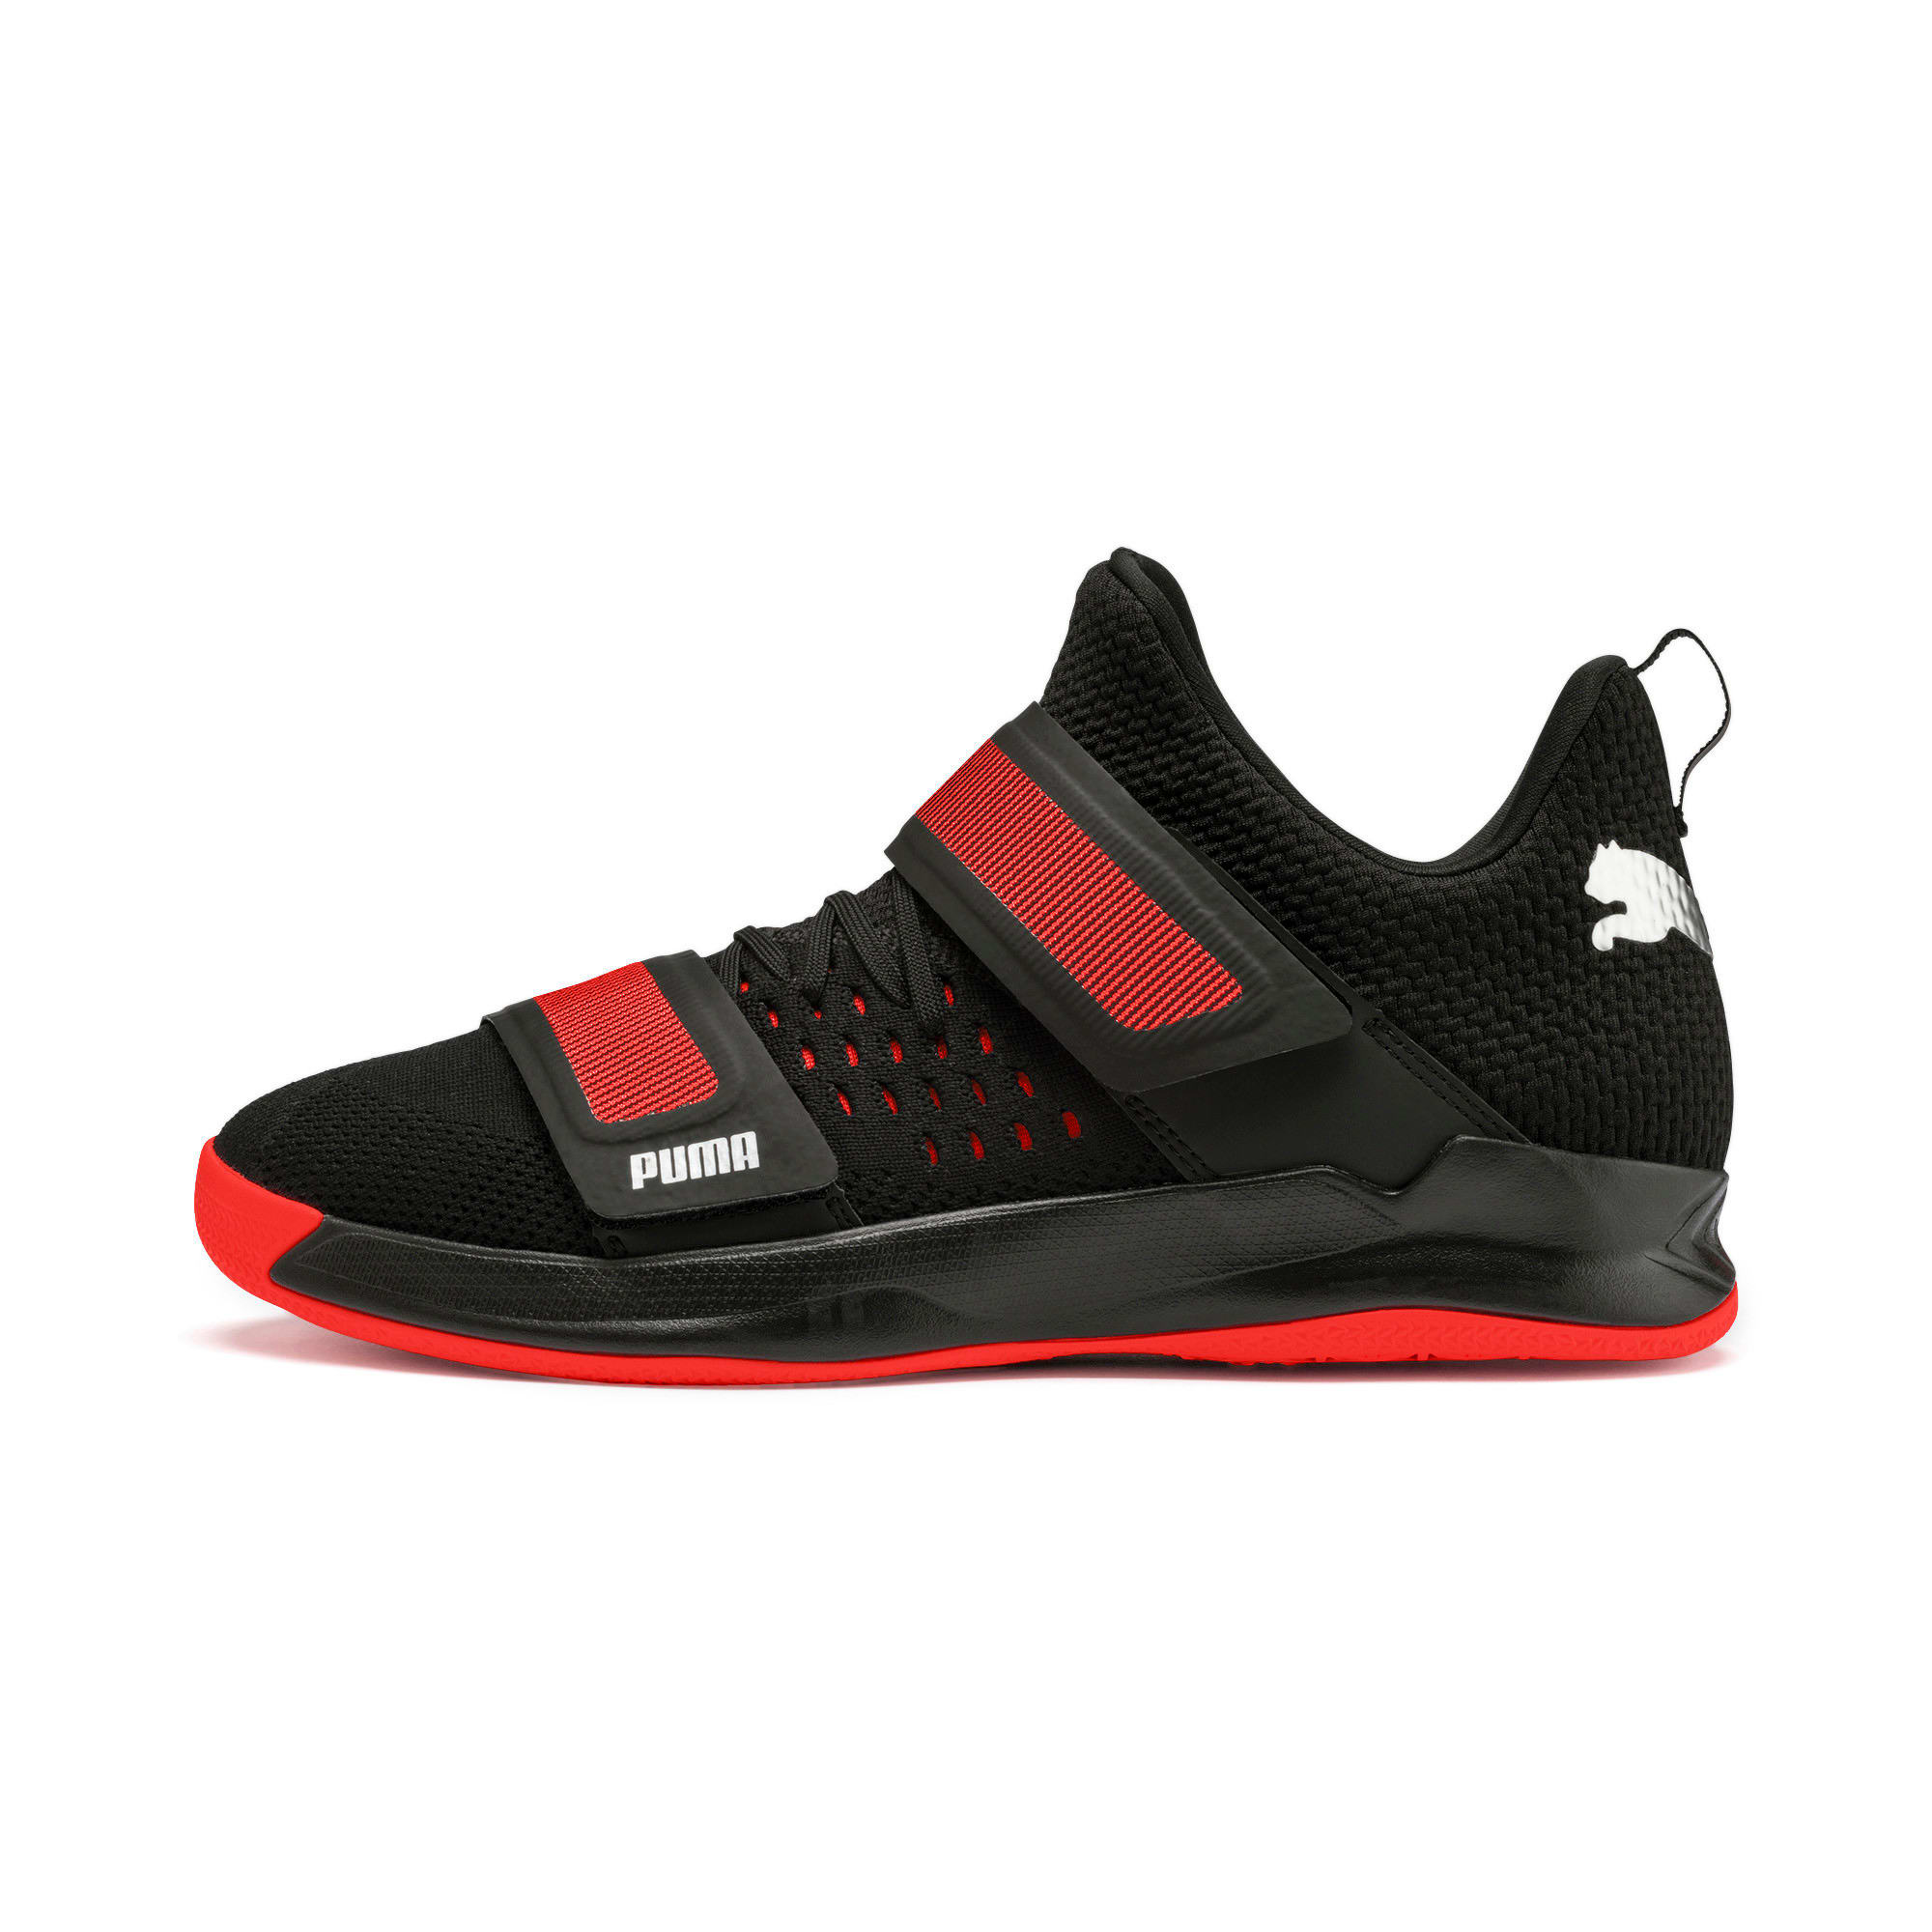 Thumbnail 1 of Basket Rise XT3 NETFIT, Puma Black-Silver-Nrgy Red, medium